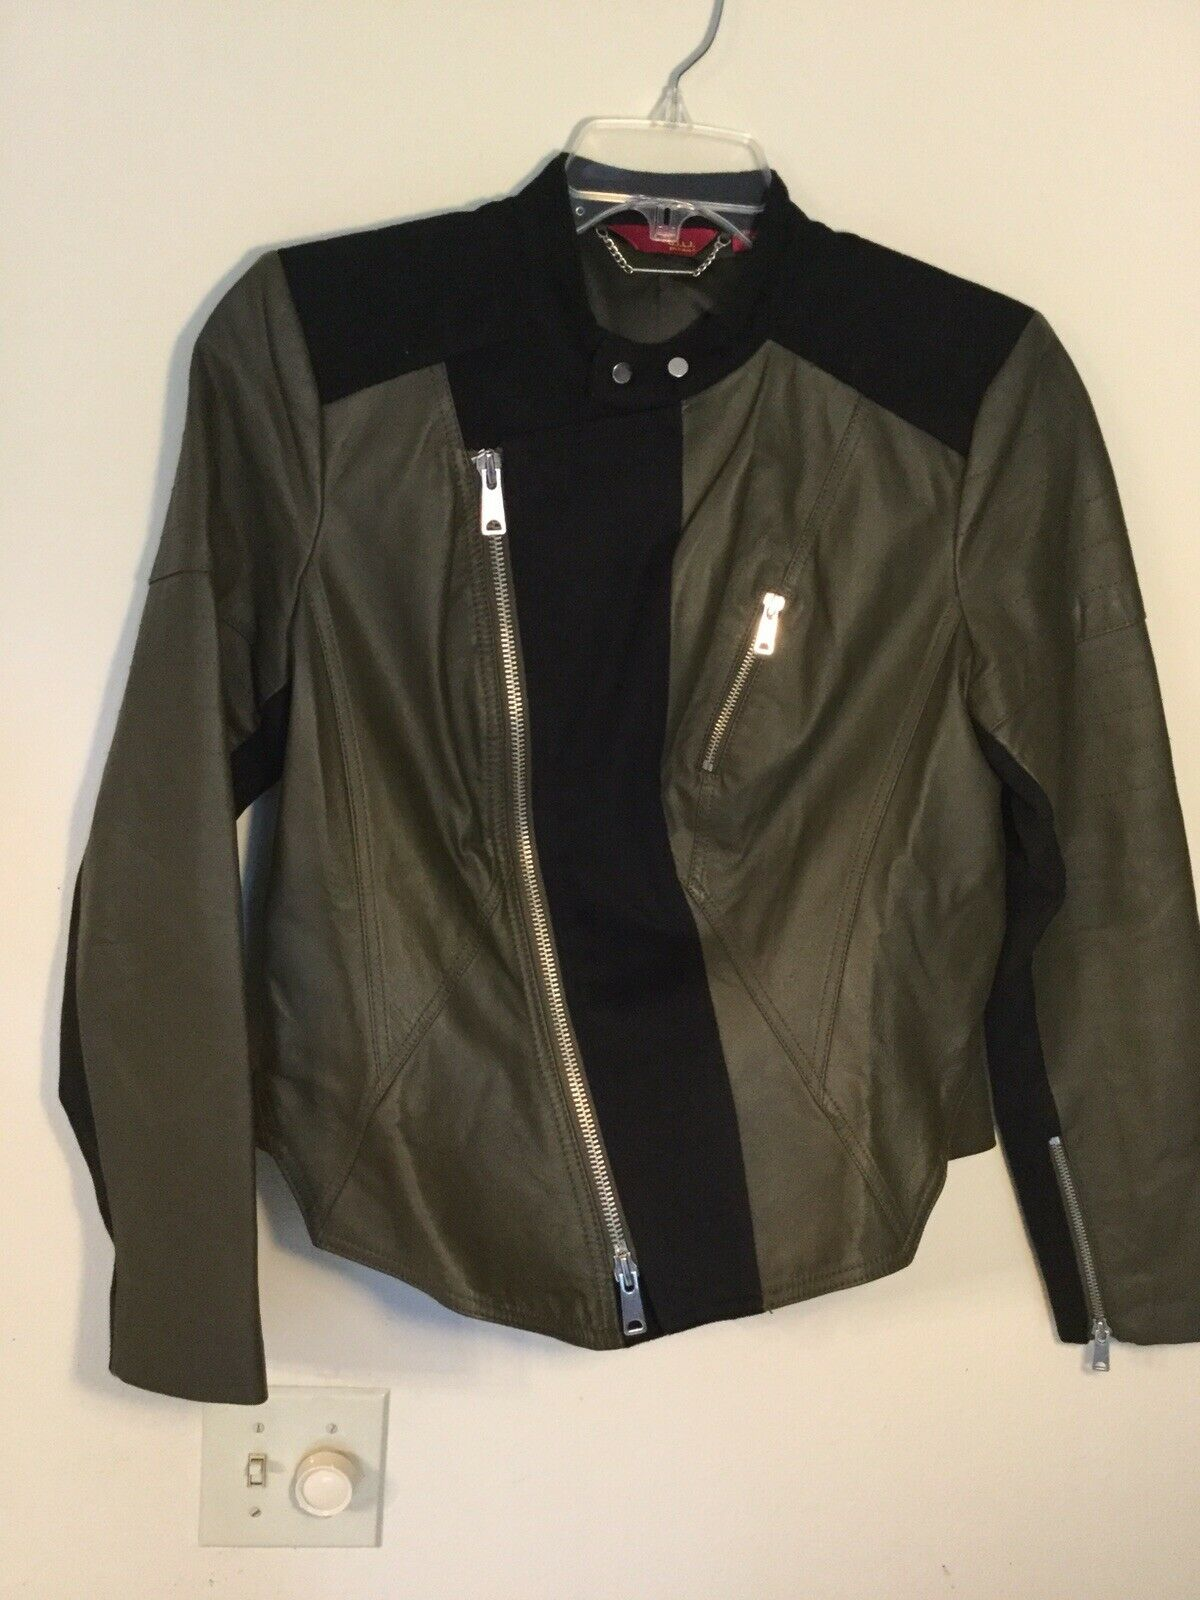 NWOT G.I.L.I. Zip Front Leather Jacket with Seaming Detail Size 10 Green Black